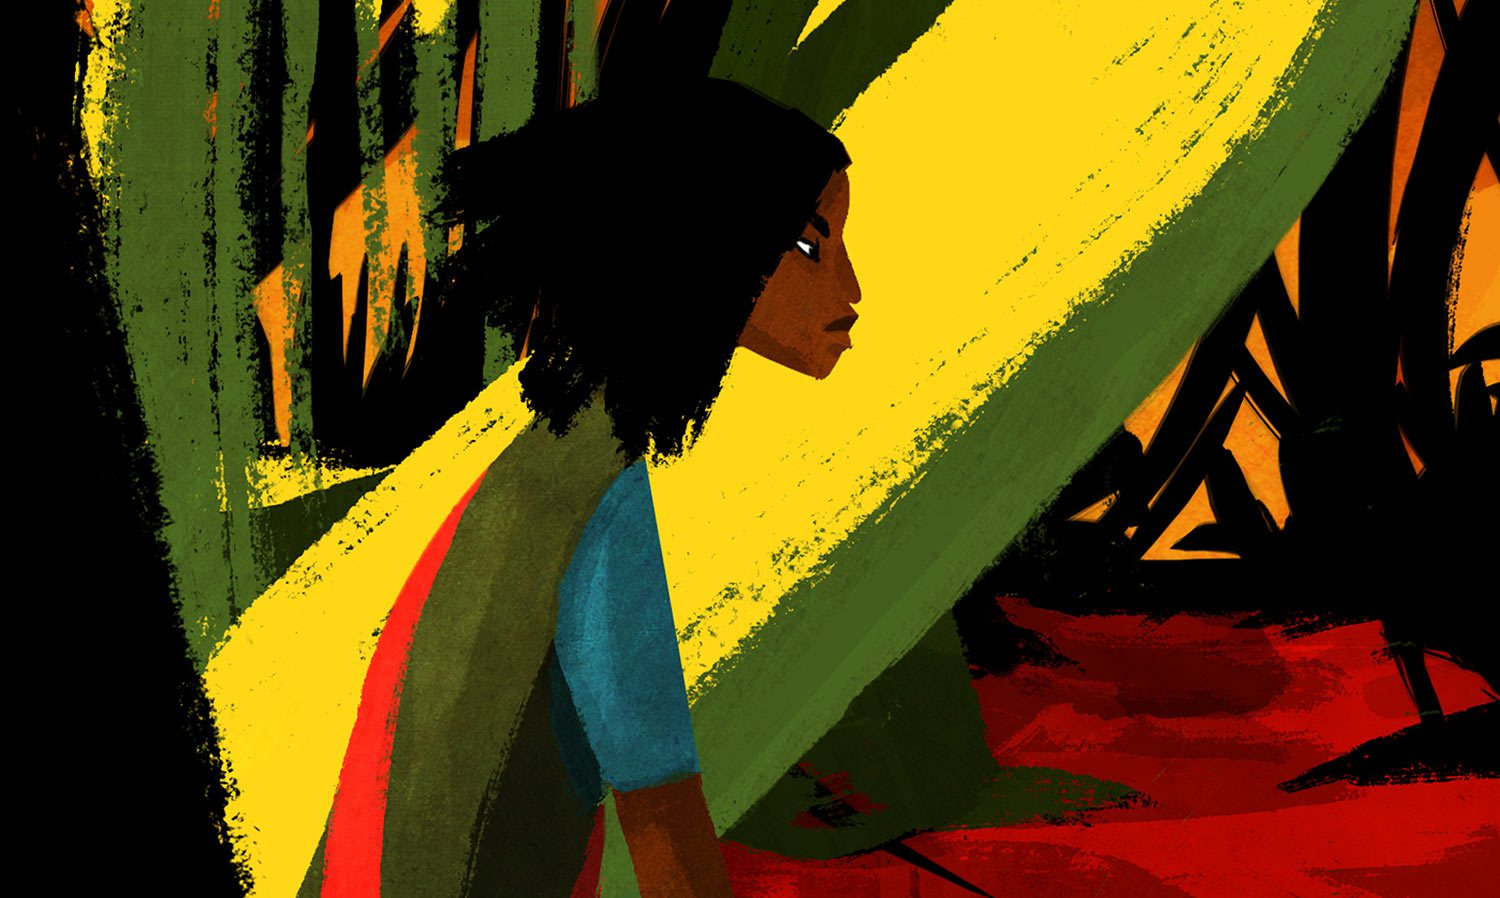 """By  Tambay Obenson   These five were among the 55 animated feature film projects that were presented at the Cartoon Movie Forum in Lyon, France; an annual initiative where producers go in search of partnerships and co-productions that will allow for the funding of around 20 animated feature films a year.  The 55 projects that were pitched came from 19 European countries: 23 of them in the concept stage; 21 in development; 8 in production; and 2 completed films.  Since 1999, over 254 films pitched at the Cartoon Movie Forum, with a total budget of 1.7 billion Euros ($1.8 billion), have secured their financing and have been released thanks to this annual event aimed at strengthening the production and distribution of animated feature films in Europe.  Below you'll find 5 projects that will be of specific interest to readers of this blog, along with descriptions, countries of origin, posters/artwork, and status.  1. """"Another Day of Life"""" (France, poster above) - is a story of a reporter searching for truth during the Angolan Civil War in 1975. During his suicidal journey across the country, he is faced with situations and events that force him to reevaluate his approach to his work and life, in general. It is the dramatic account of the three months the reporter spent in civil war. (In post-production).  2.  """"The Prince of the City of Sand"""" (Luxemborg) - Songs are the oil that makes dreams flow, the water that makes them germinate. Because of this, Rokìa loves more than anything to listen to her grandfather Matuké and sing along with him. And it is for this that the Prince of the City of Sand, who blots out the dreams of men with sand and collects their souls, hates the storytellers. This is the song of Rokìa, the girl with the enchanting voice. The girl who will cross the desert to recover the soul that the Prince of the City of Sand has stolen from Matuké, the great storyteller. (In development)  3.  """"Nayola"""" (Portugal, Belgium, Angola) - Three generations of women a"""